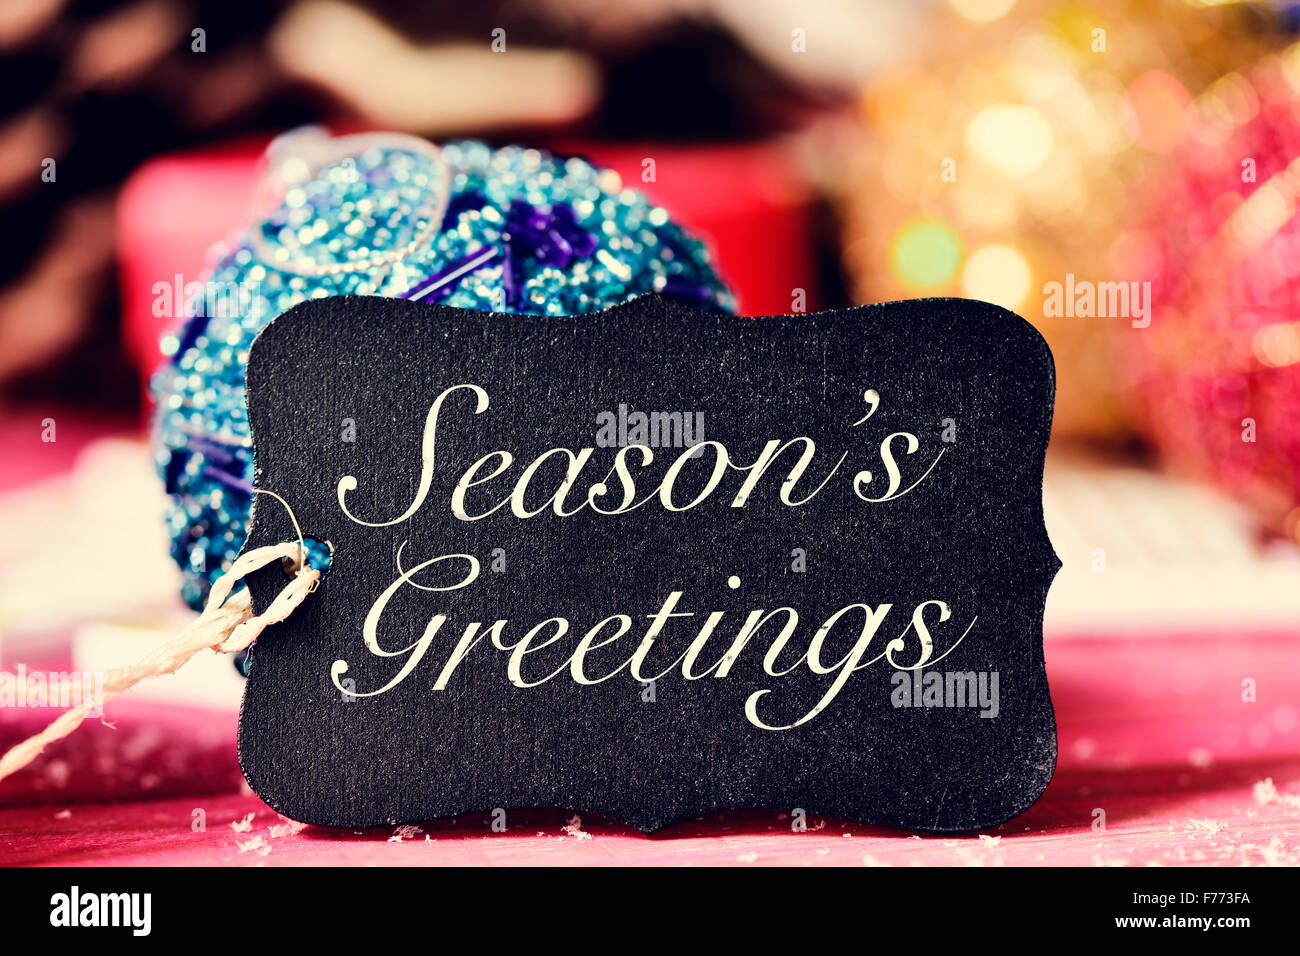 Seasons greetings christmas stock photos seasons greetings closeup of a black label with the text seasons greetings and on a rustic wooden surface kristyandbryce Images